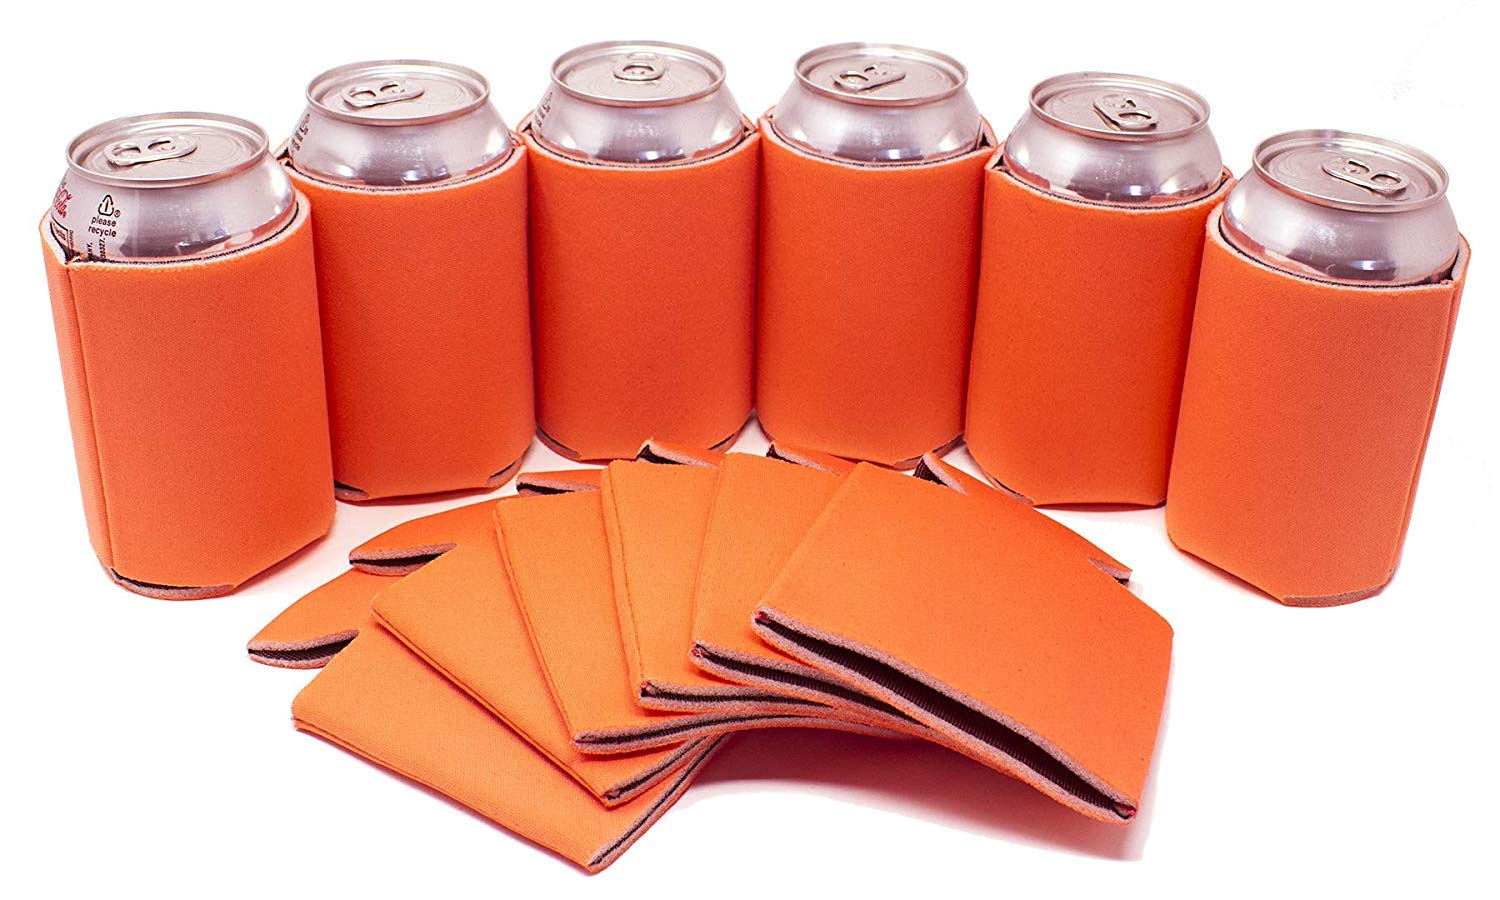 TahoeBay 25 Blank Beer Can Coolers, Plain Bulk Collapsible Soda Cover Coolies, DIY Personalized Sublimation Sleeves for Weddings, Bachelorette Parties, Funny HTV Party Favors (Orange, 25)